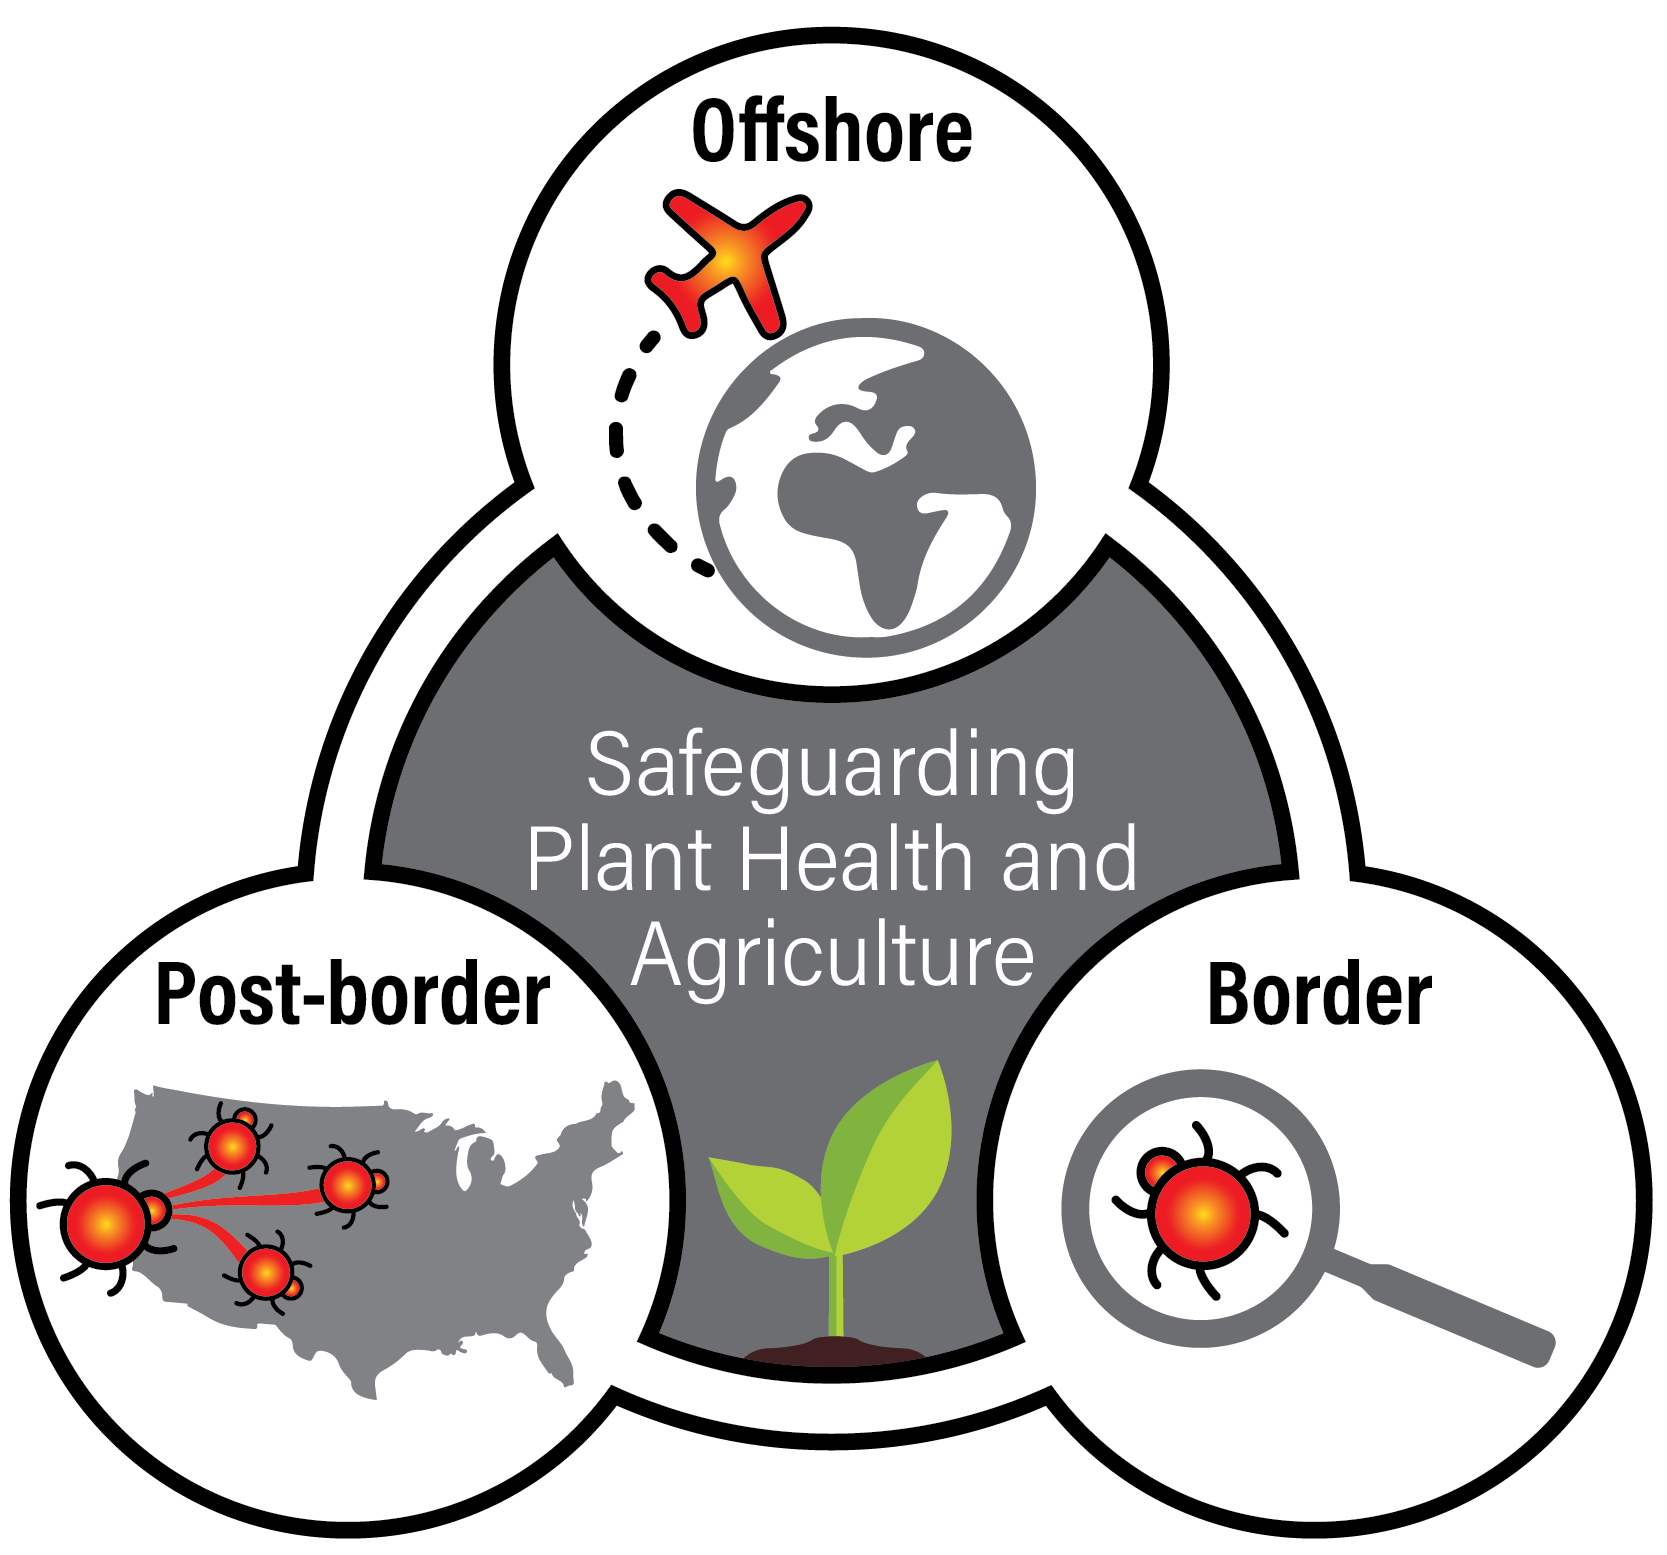 Safeguarding plant health and agriculture